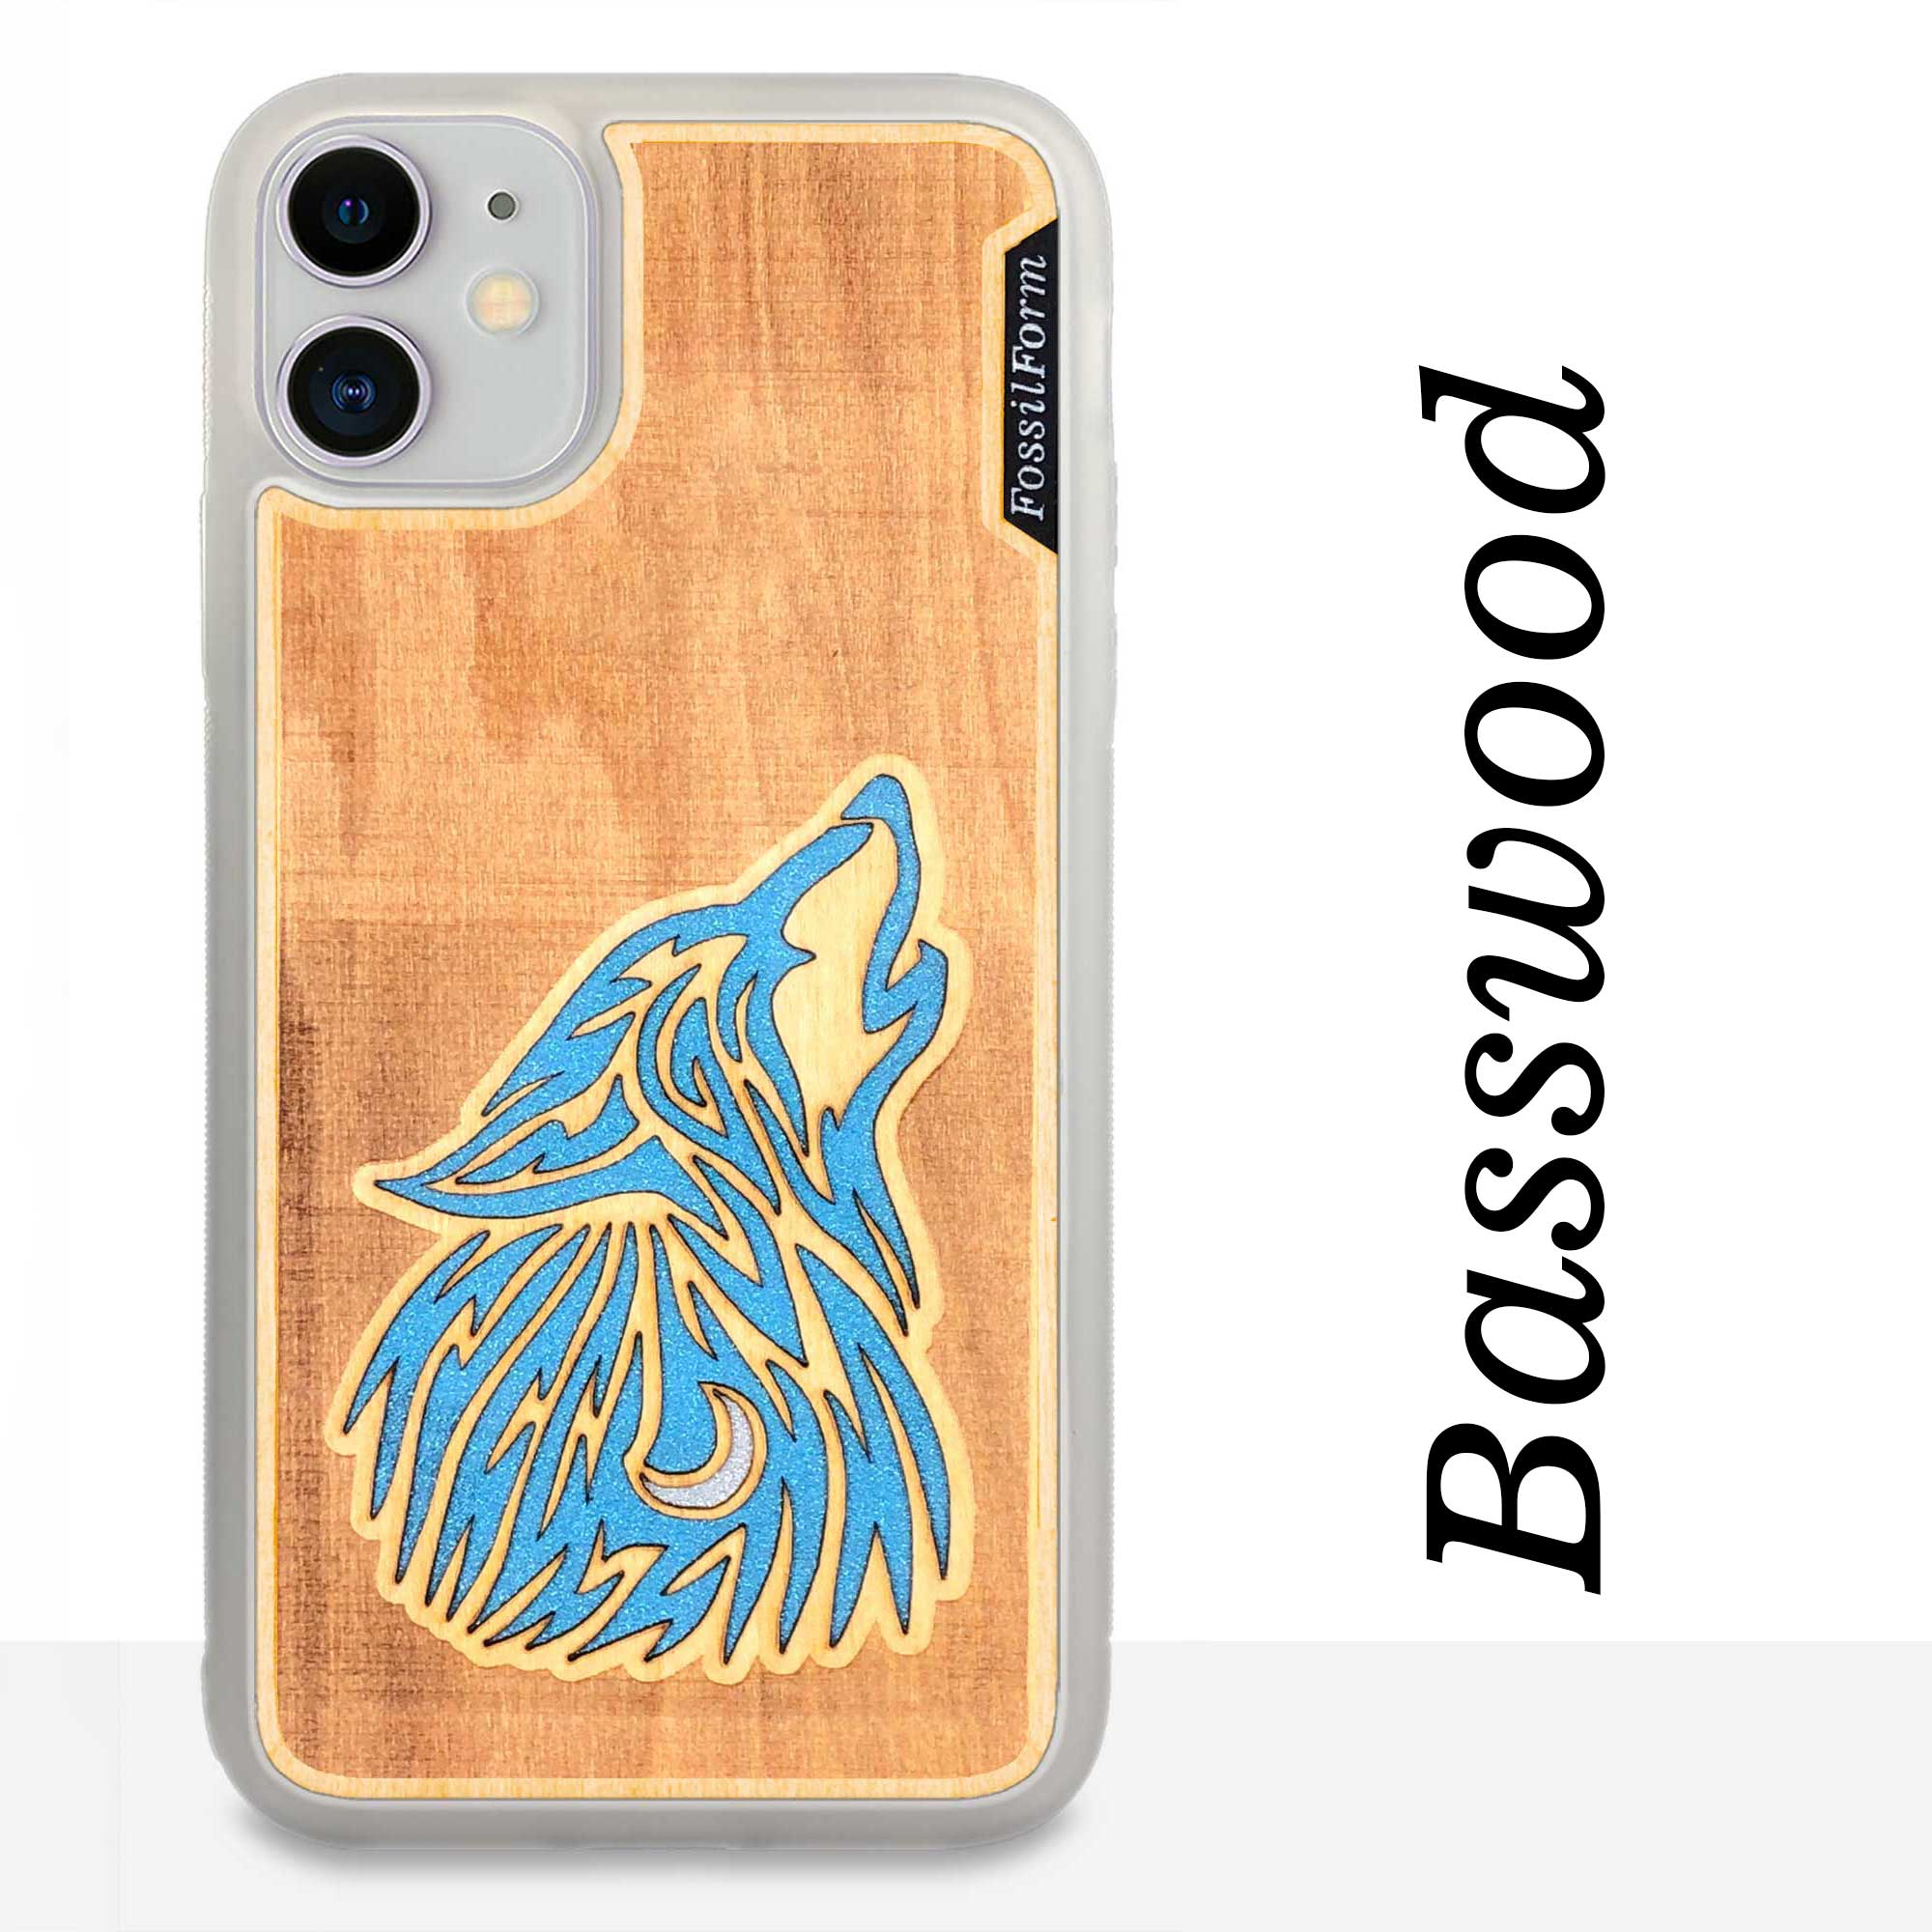 howling Wolf - Engraved Wood & Resin Case - White